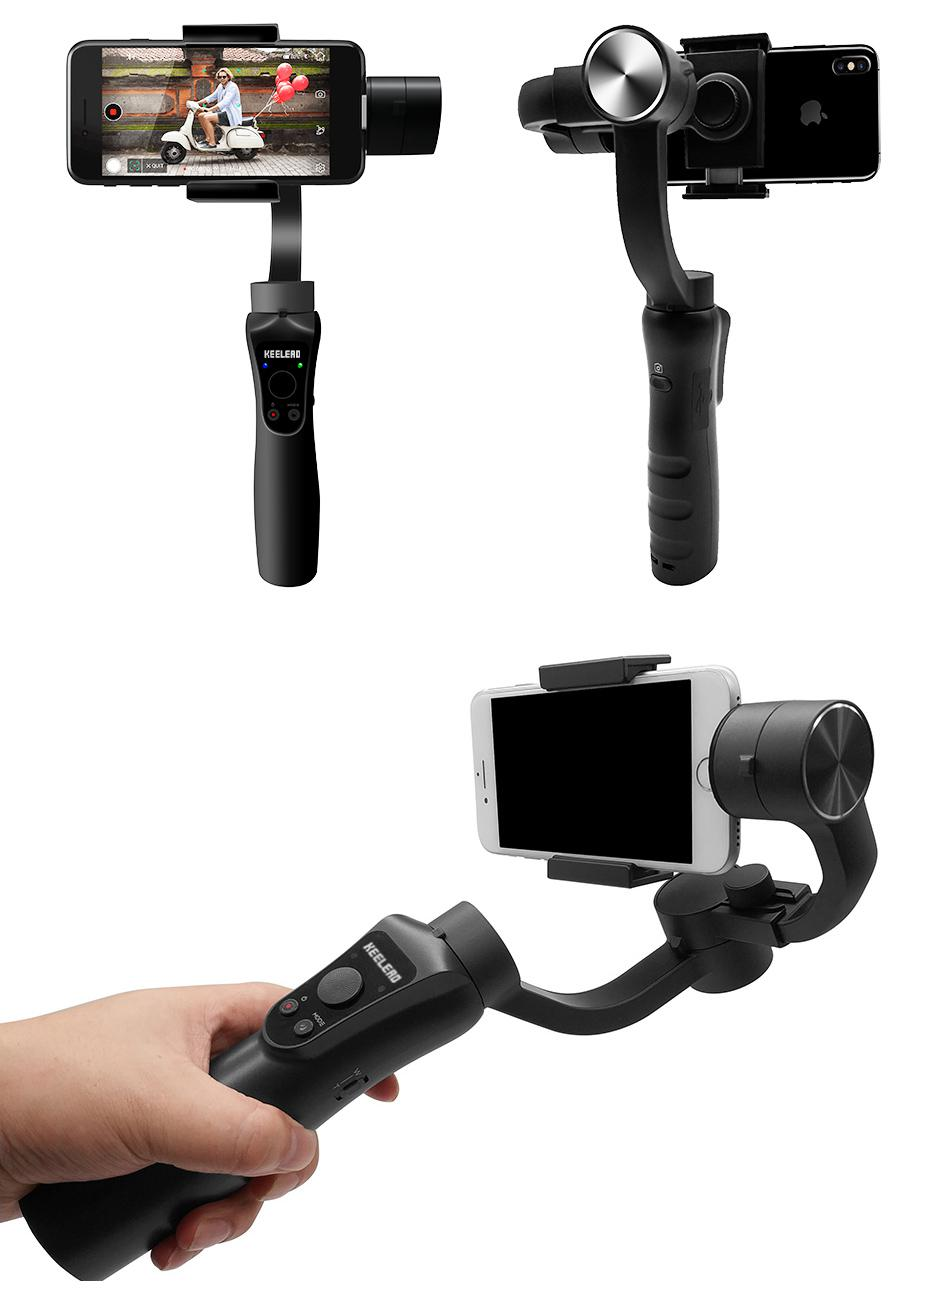 KEELEAD S5 3-Axis Handheld Gimbal Stabilizer